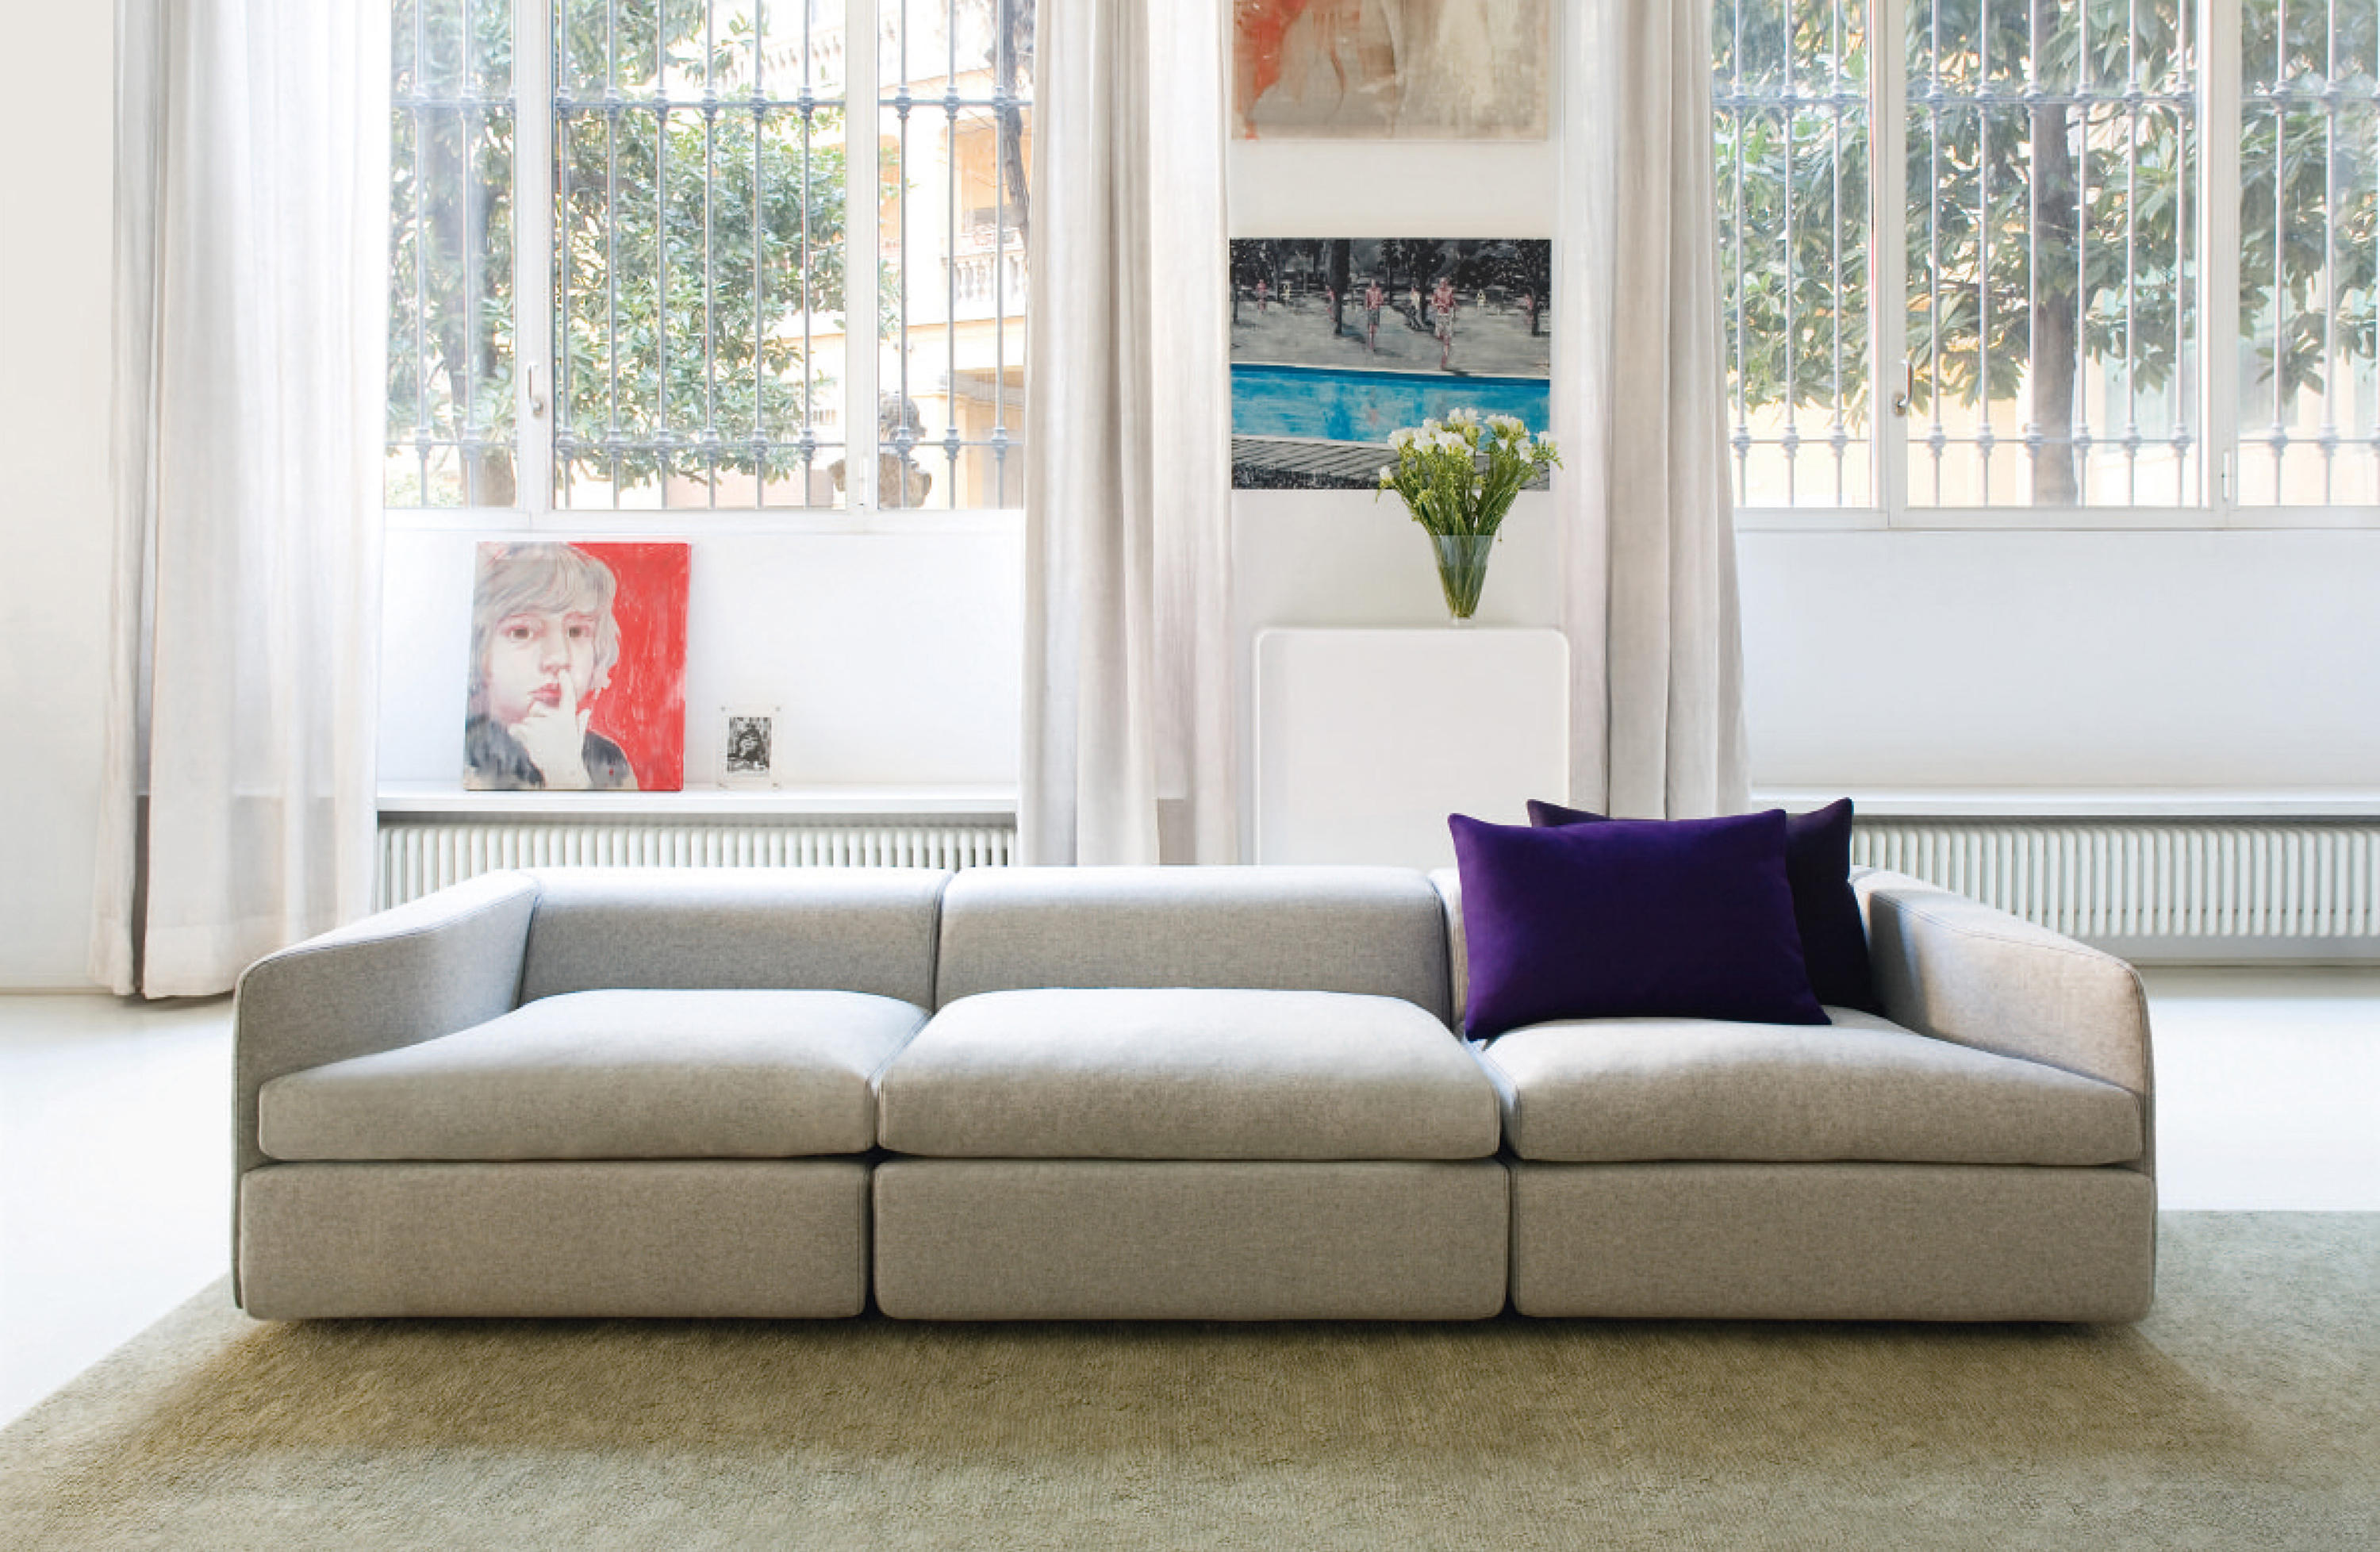 OPEN SOFA Lounge sofas from OBJEKTEN